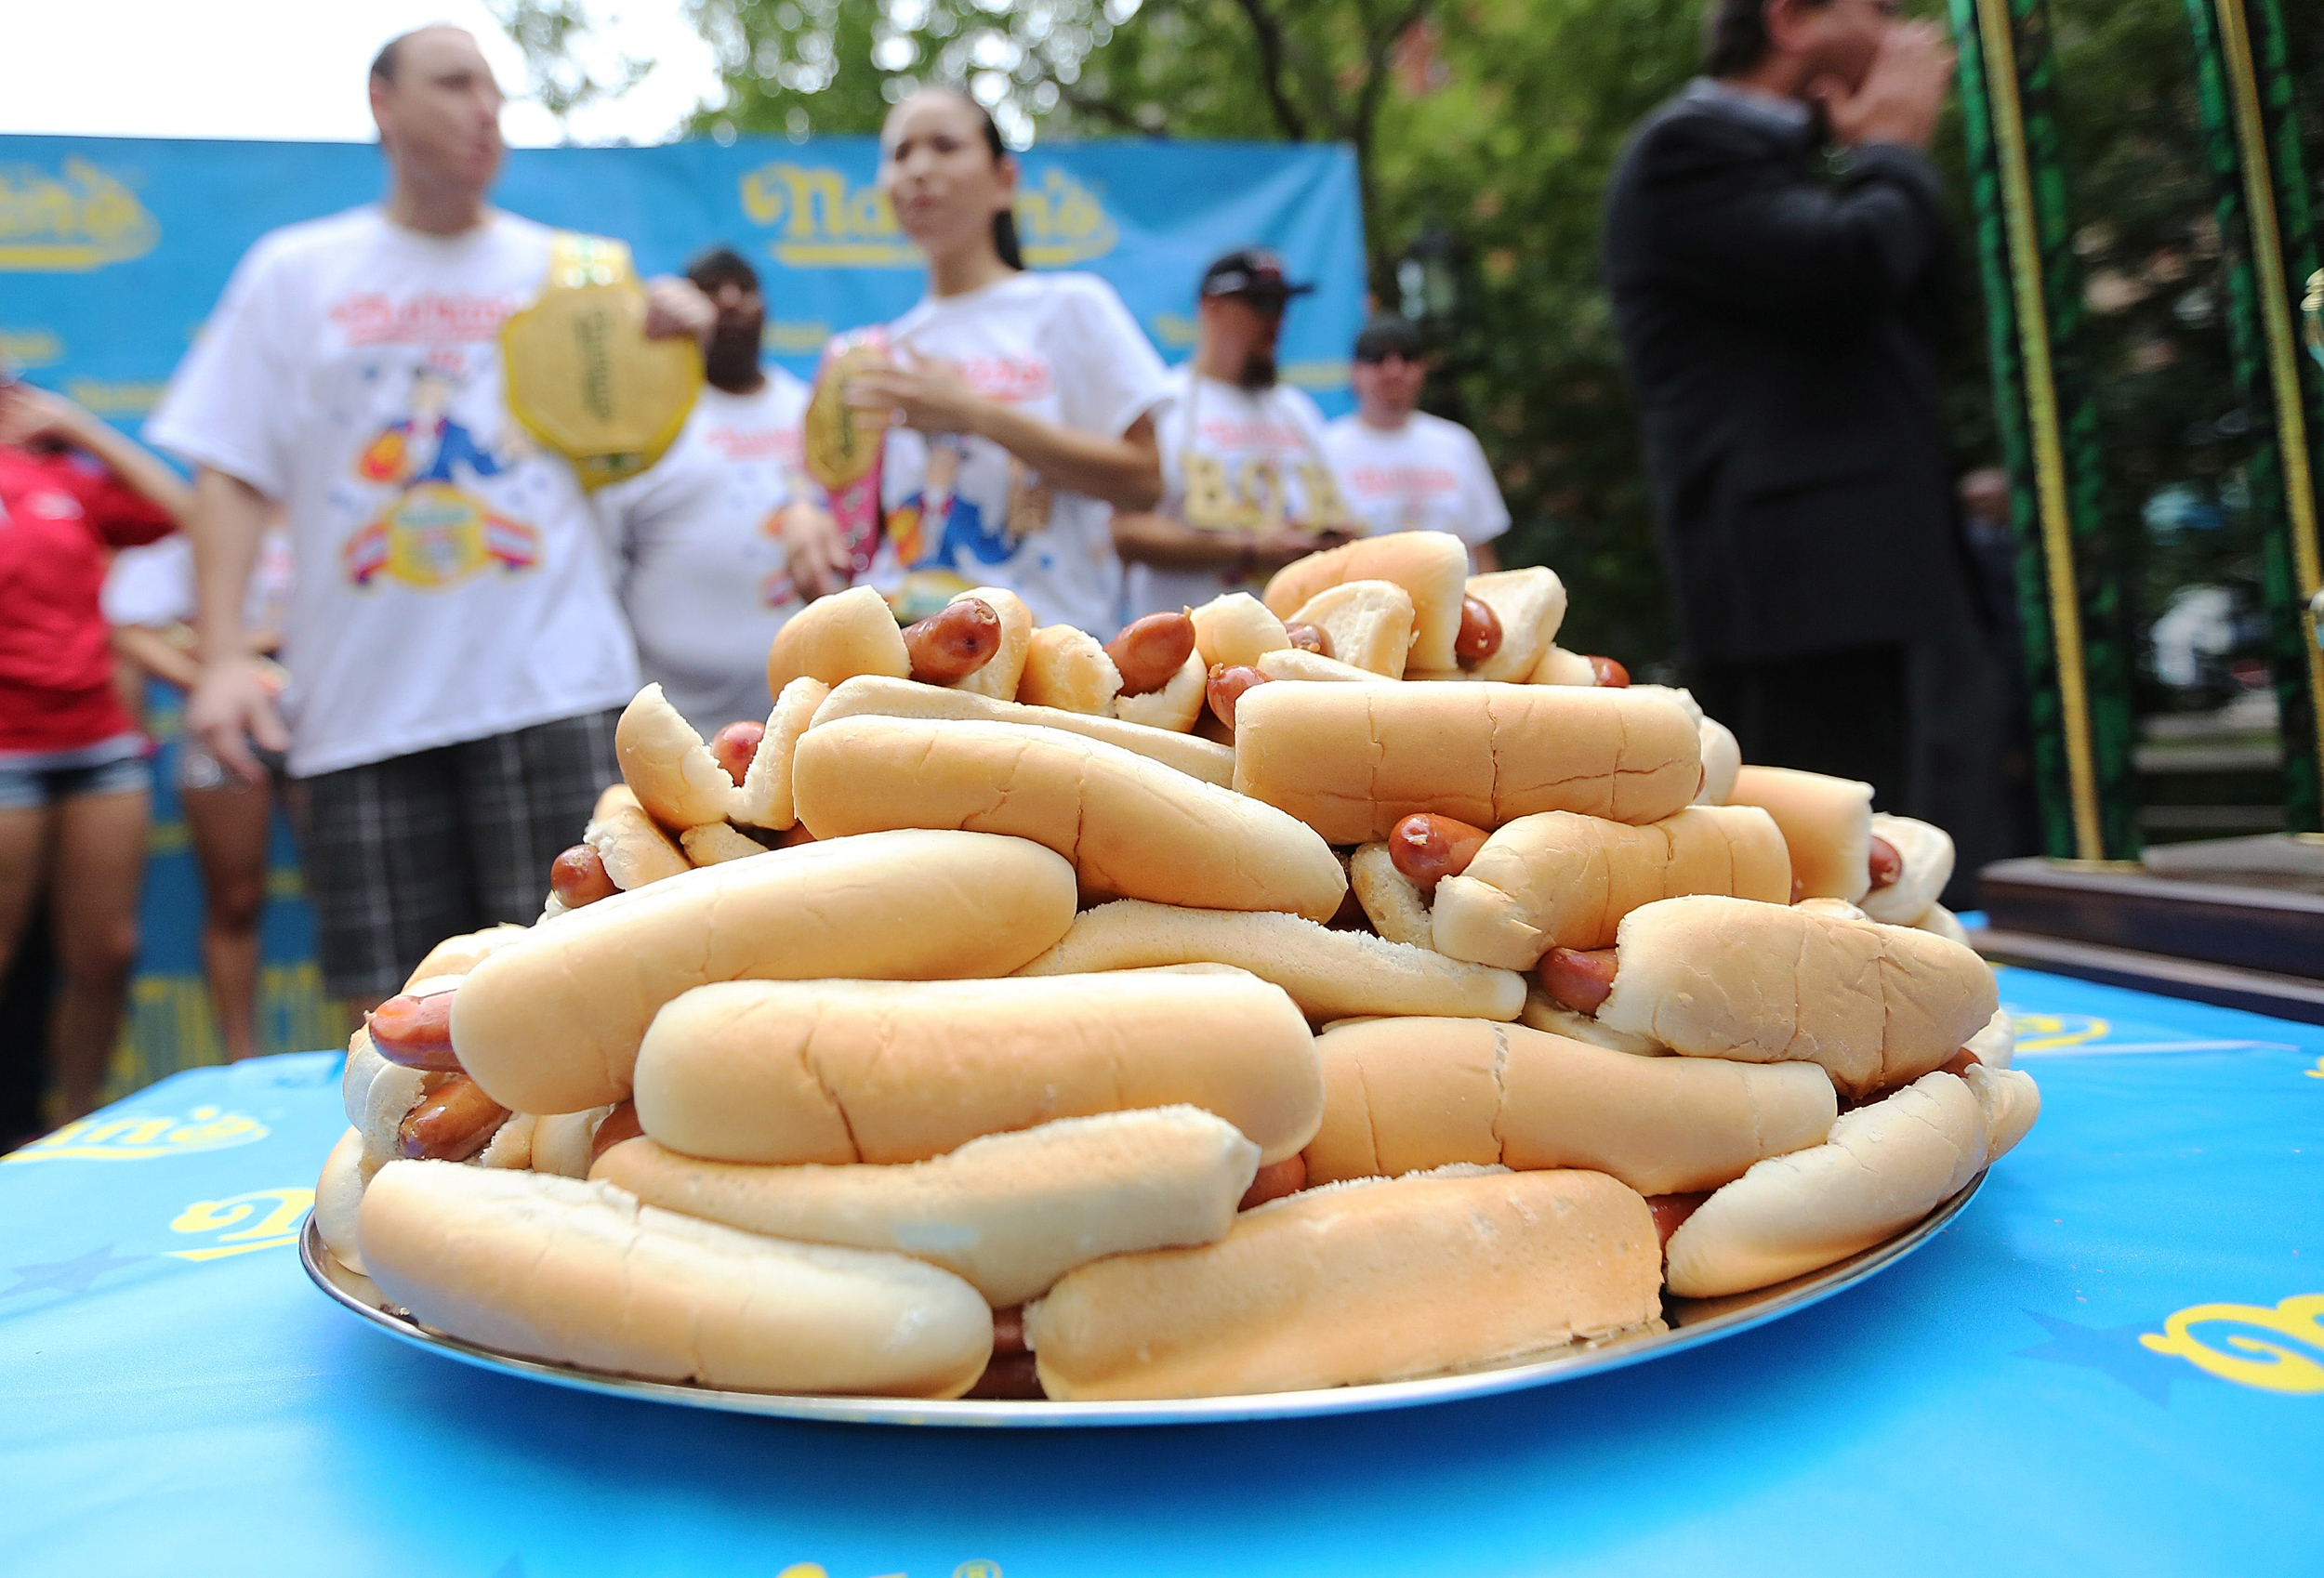 How the Hot Dog Eating Contest Became a Tradition